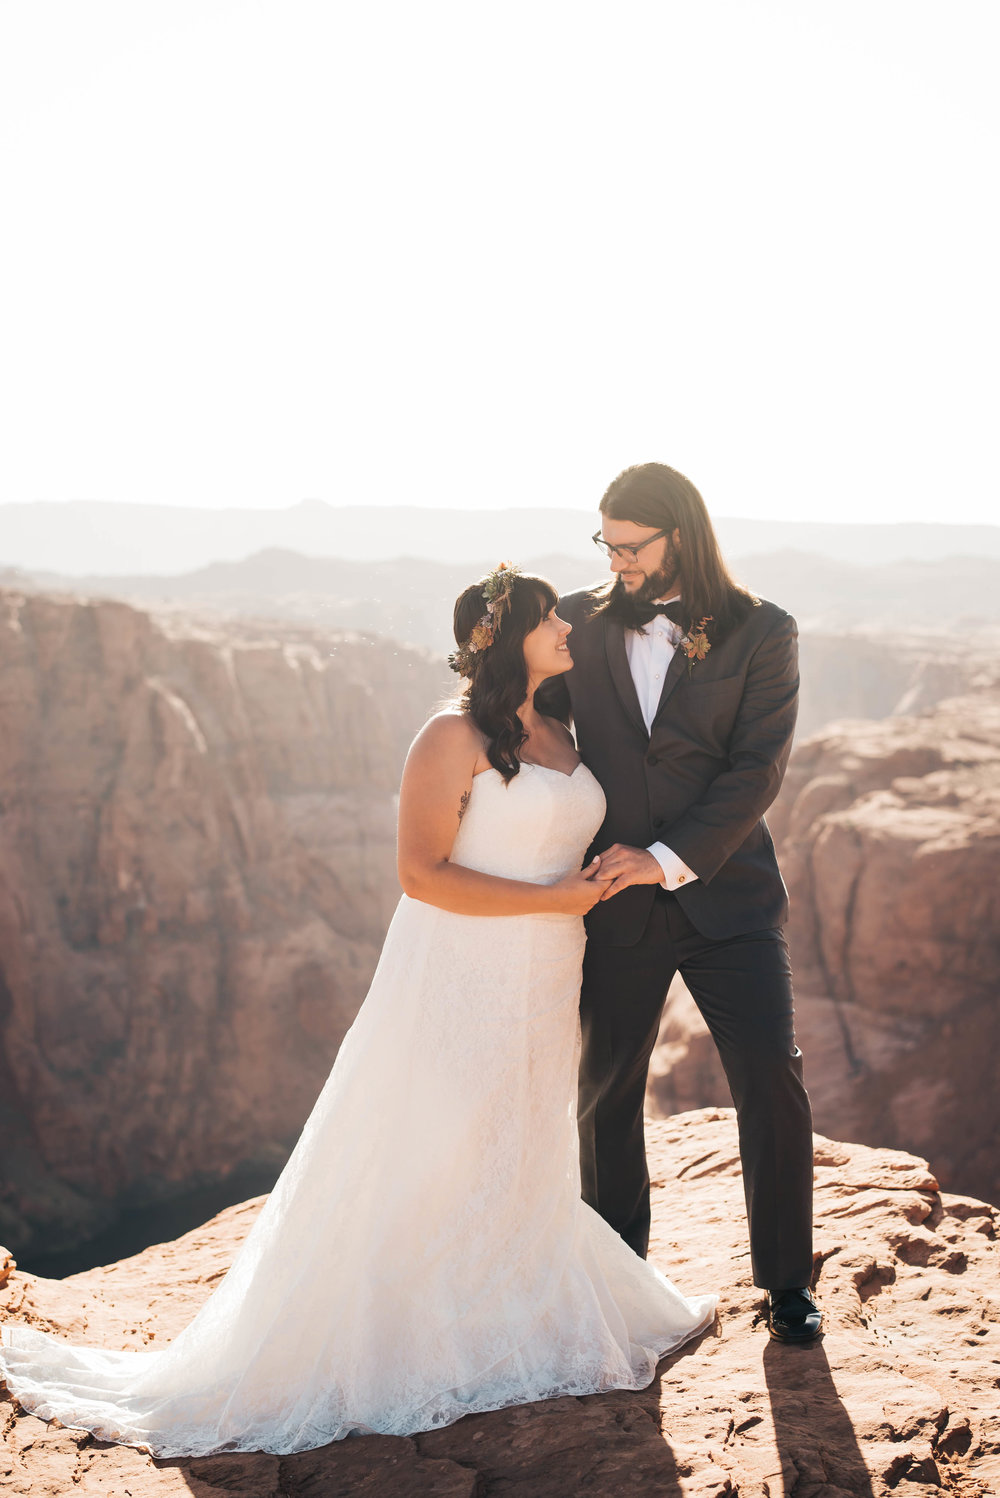 oregon arizon california utah georgia nontraditional adventure wedding elopement photographer-159.jpg